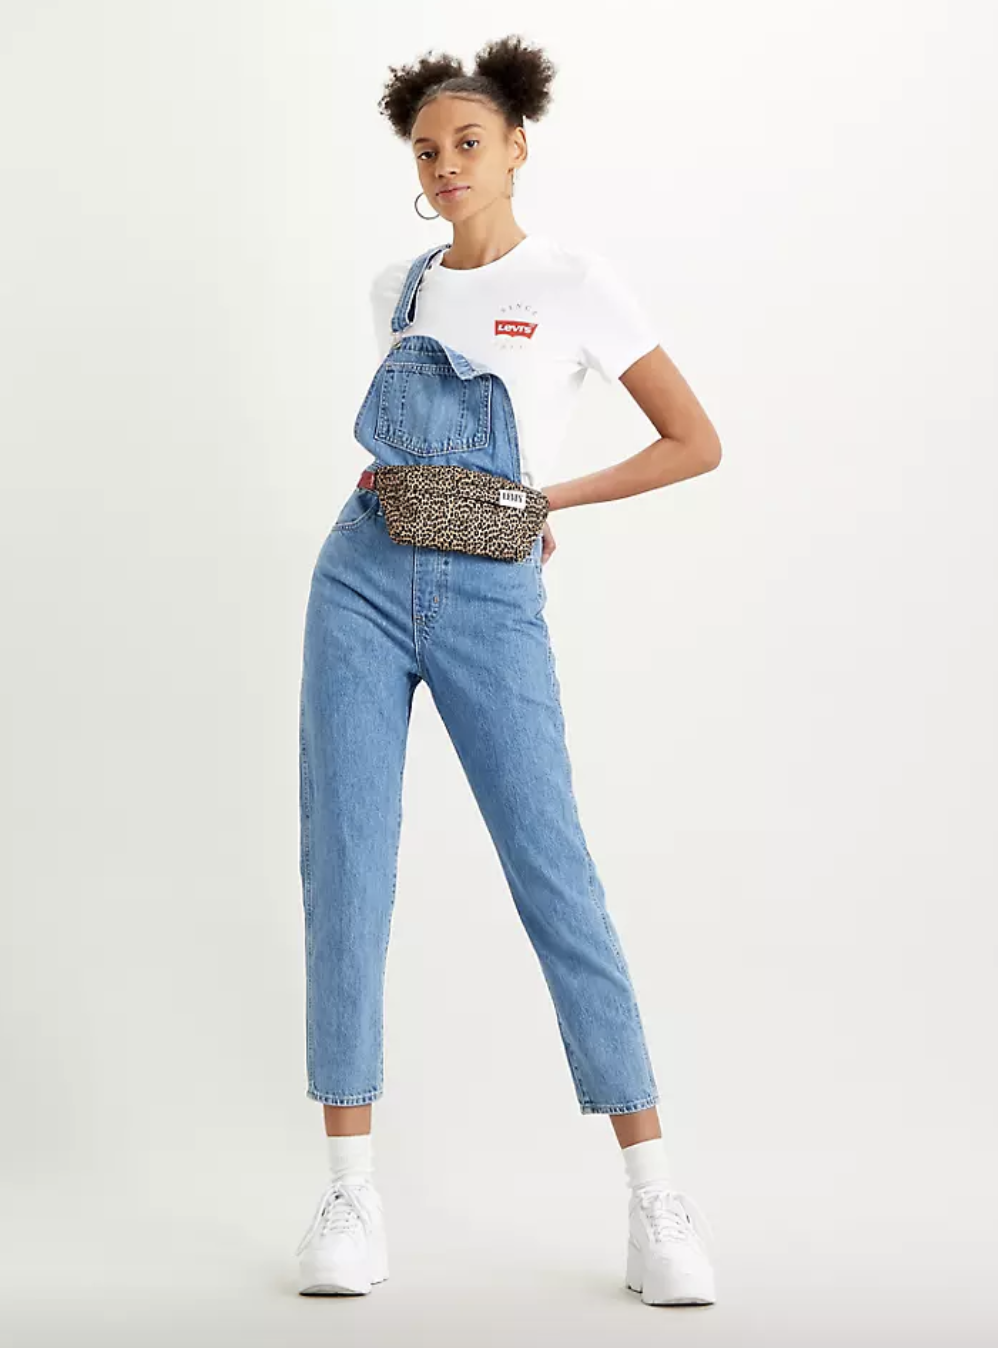 Model in a pair of lightwash overalls that fall at the ankle